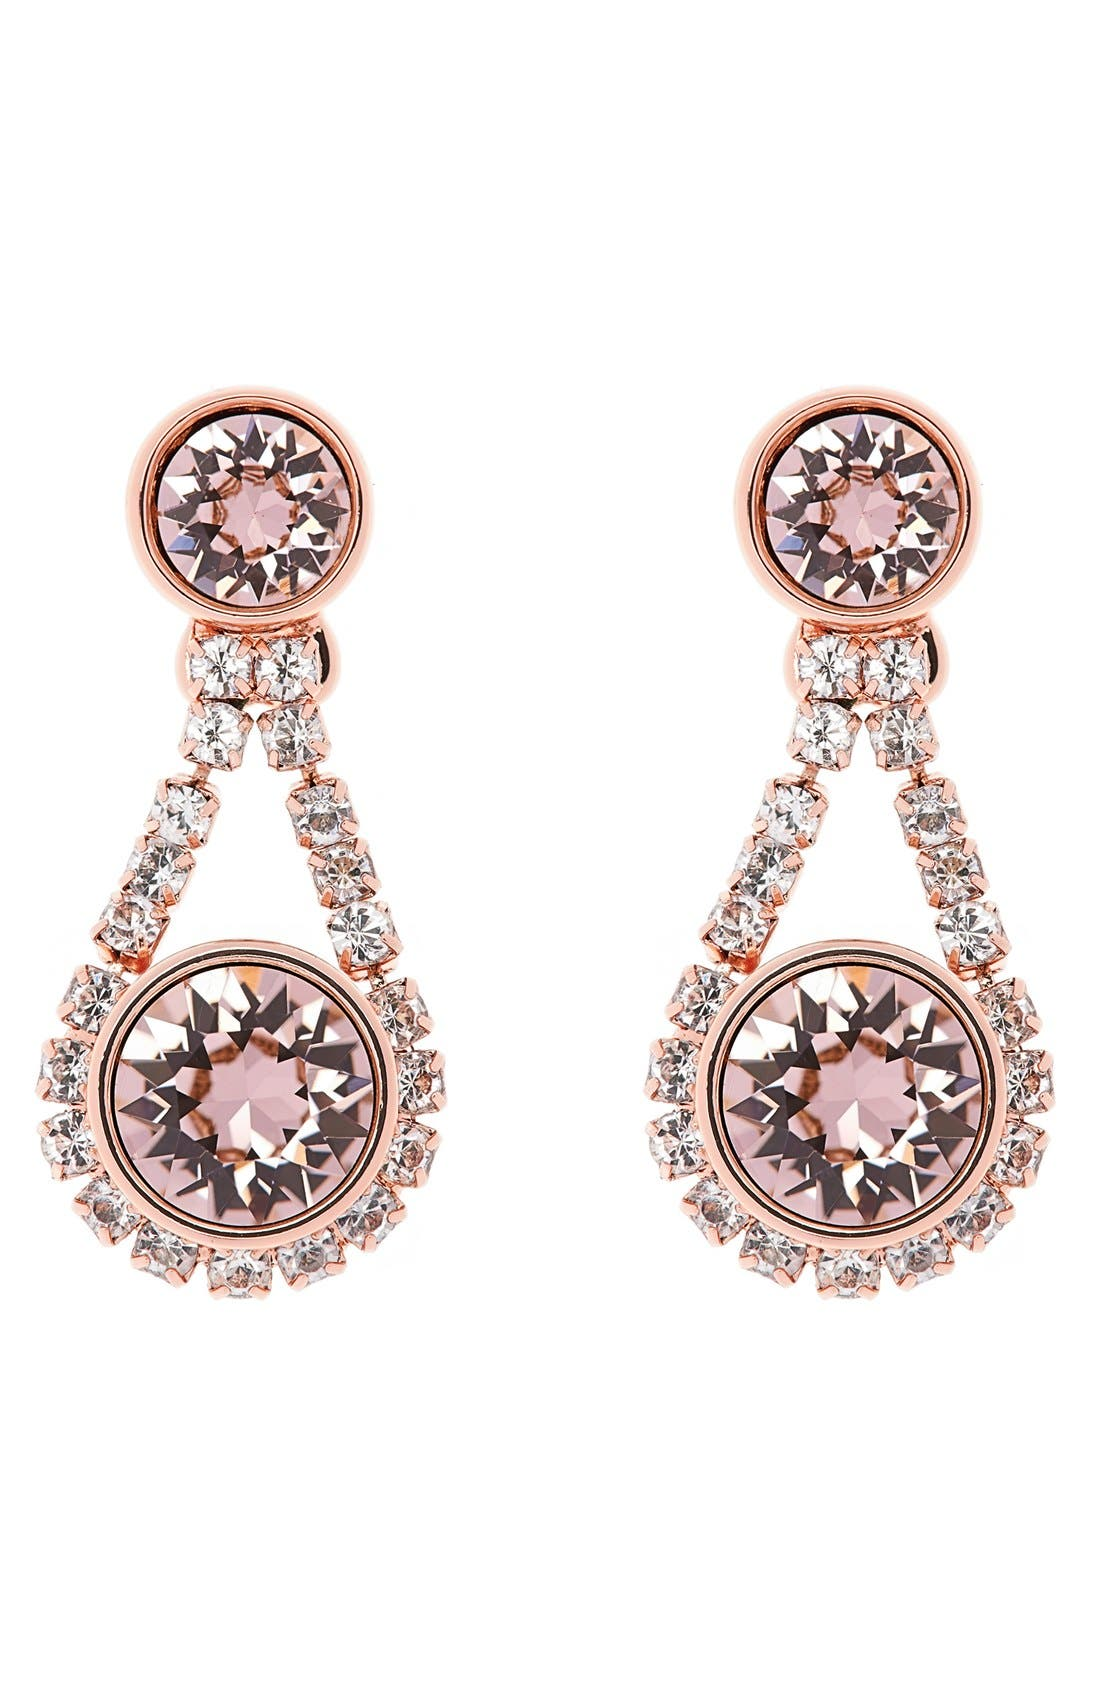 Main Image - Ted Baker London 'Crystal Daisy' Drop Earrings